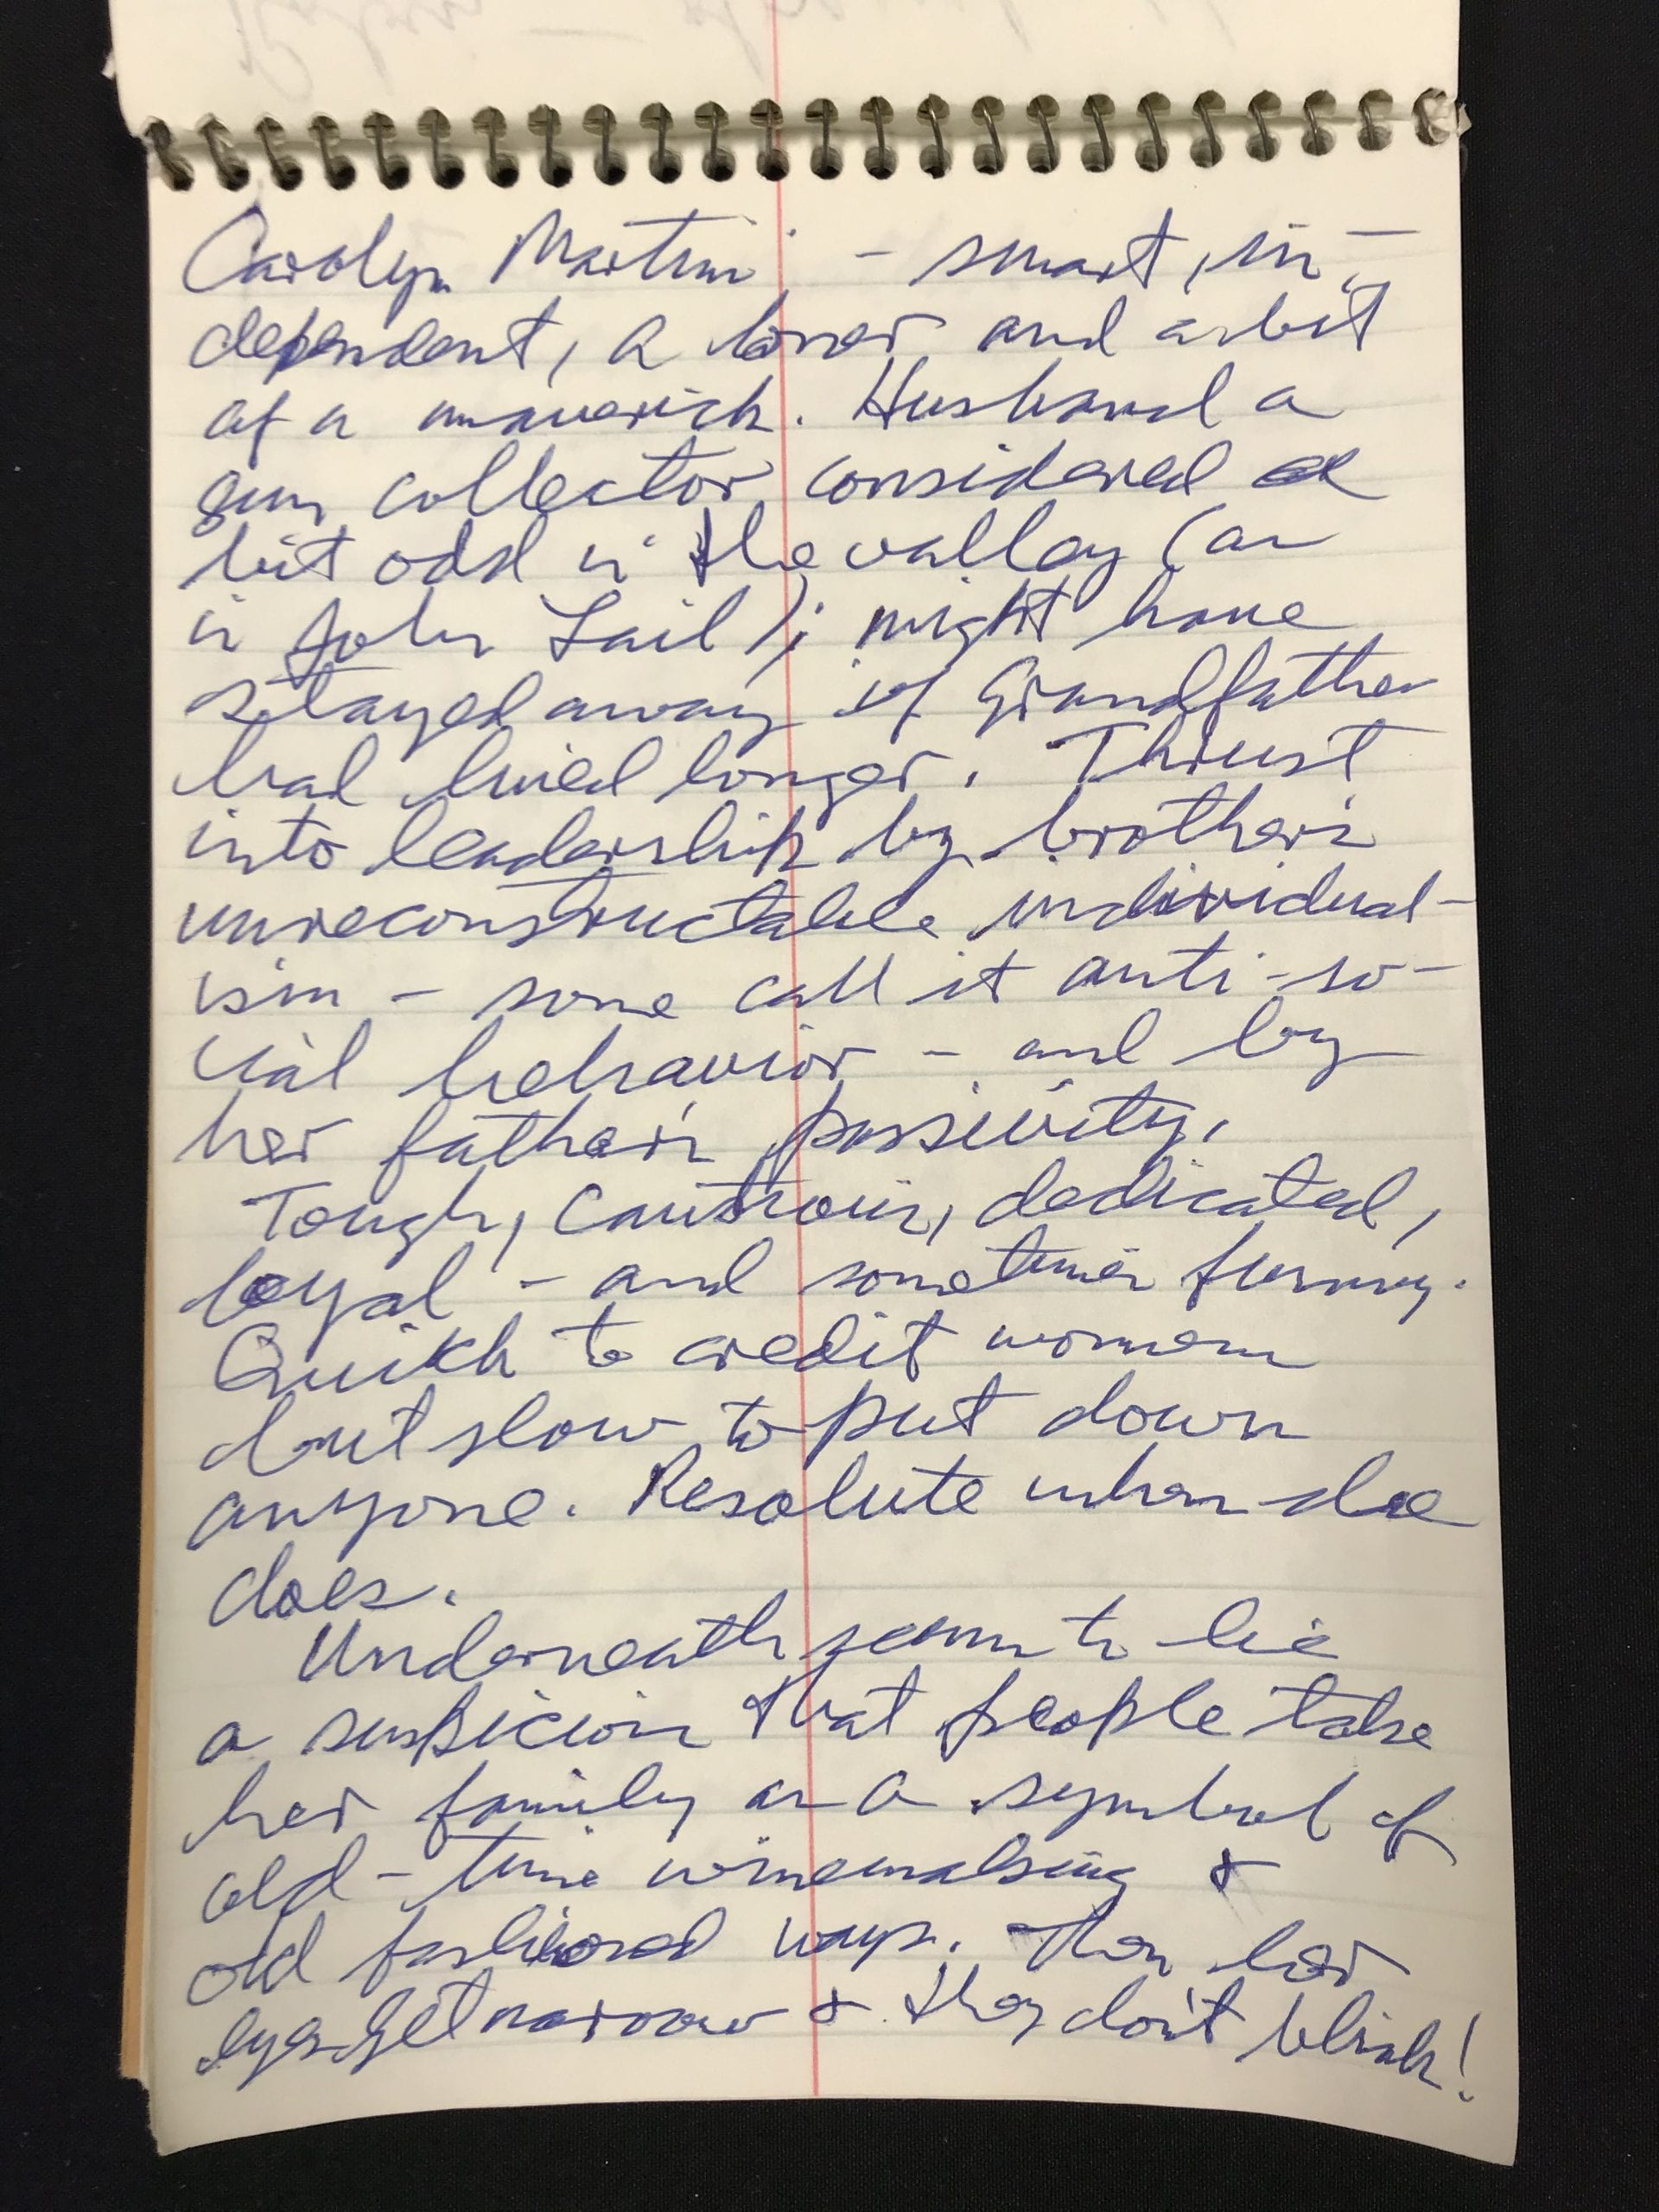 Page from Conaway notebook -- Carolyn Martini profile